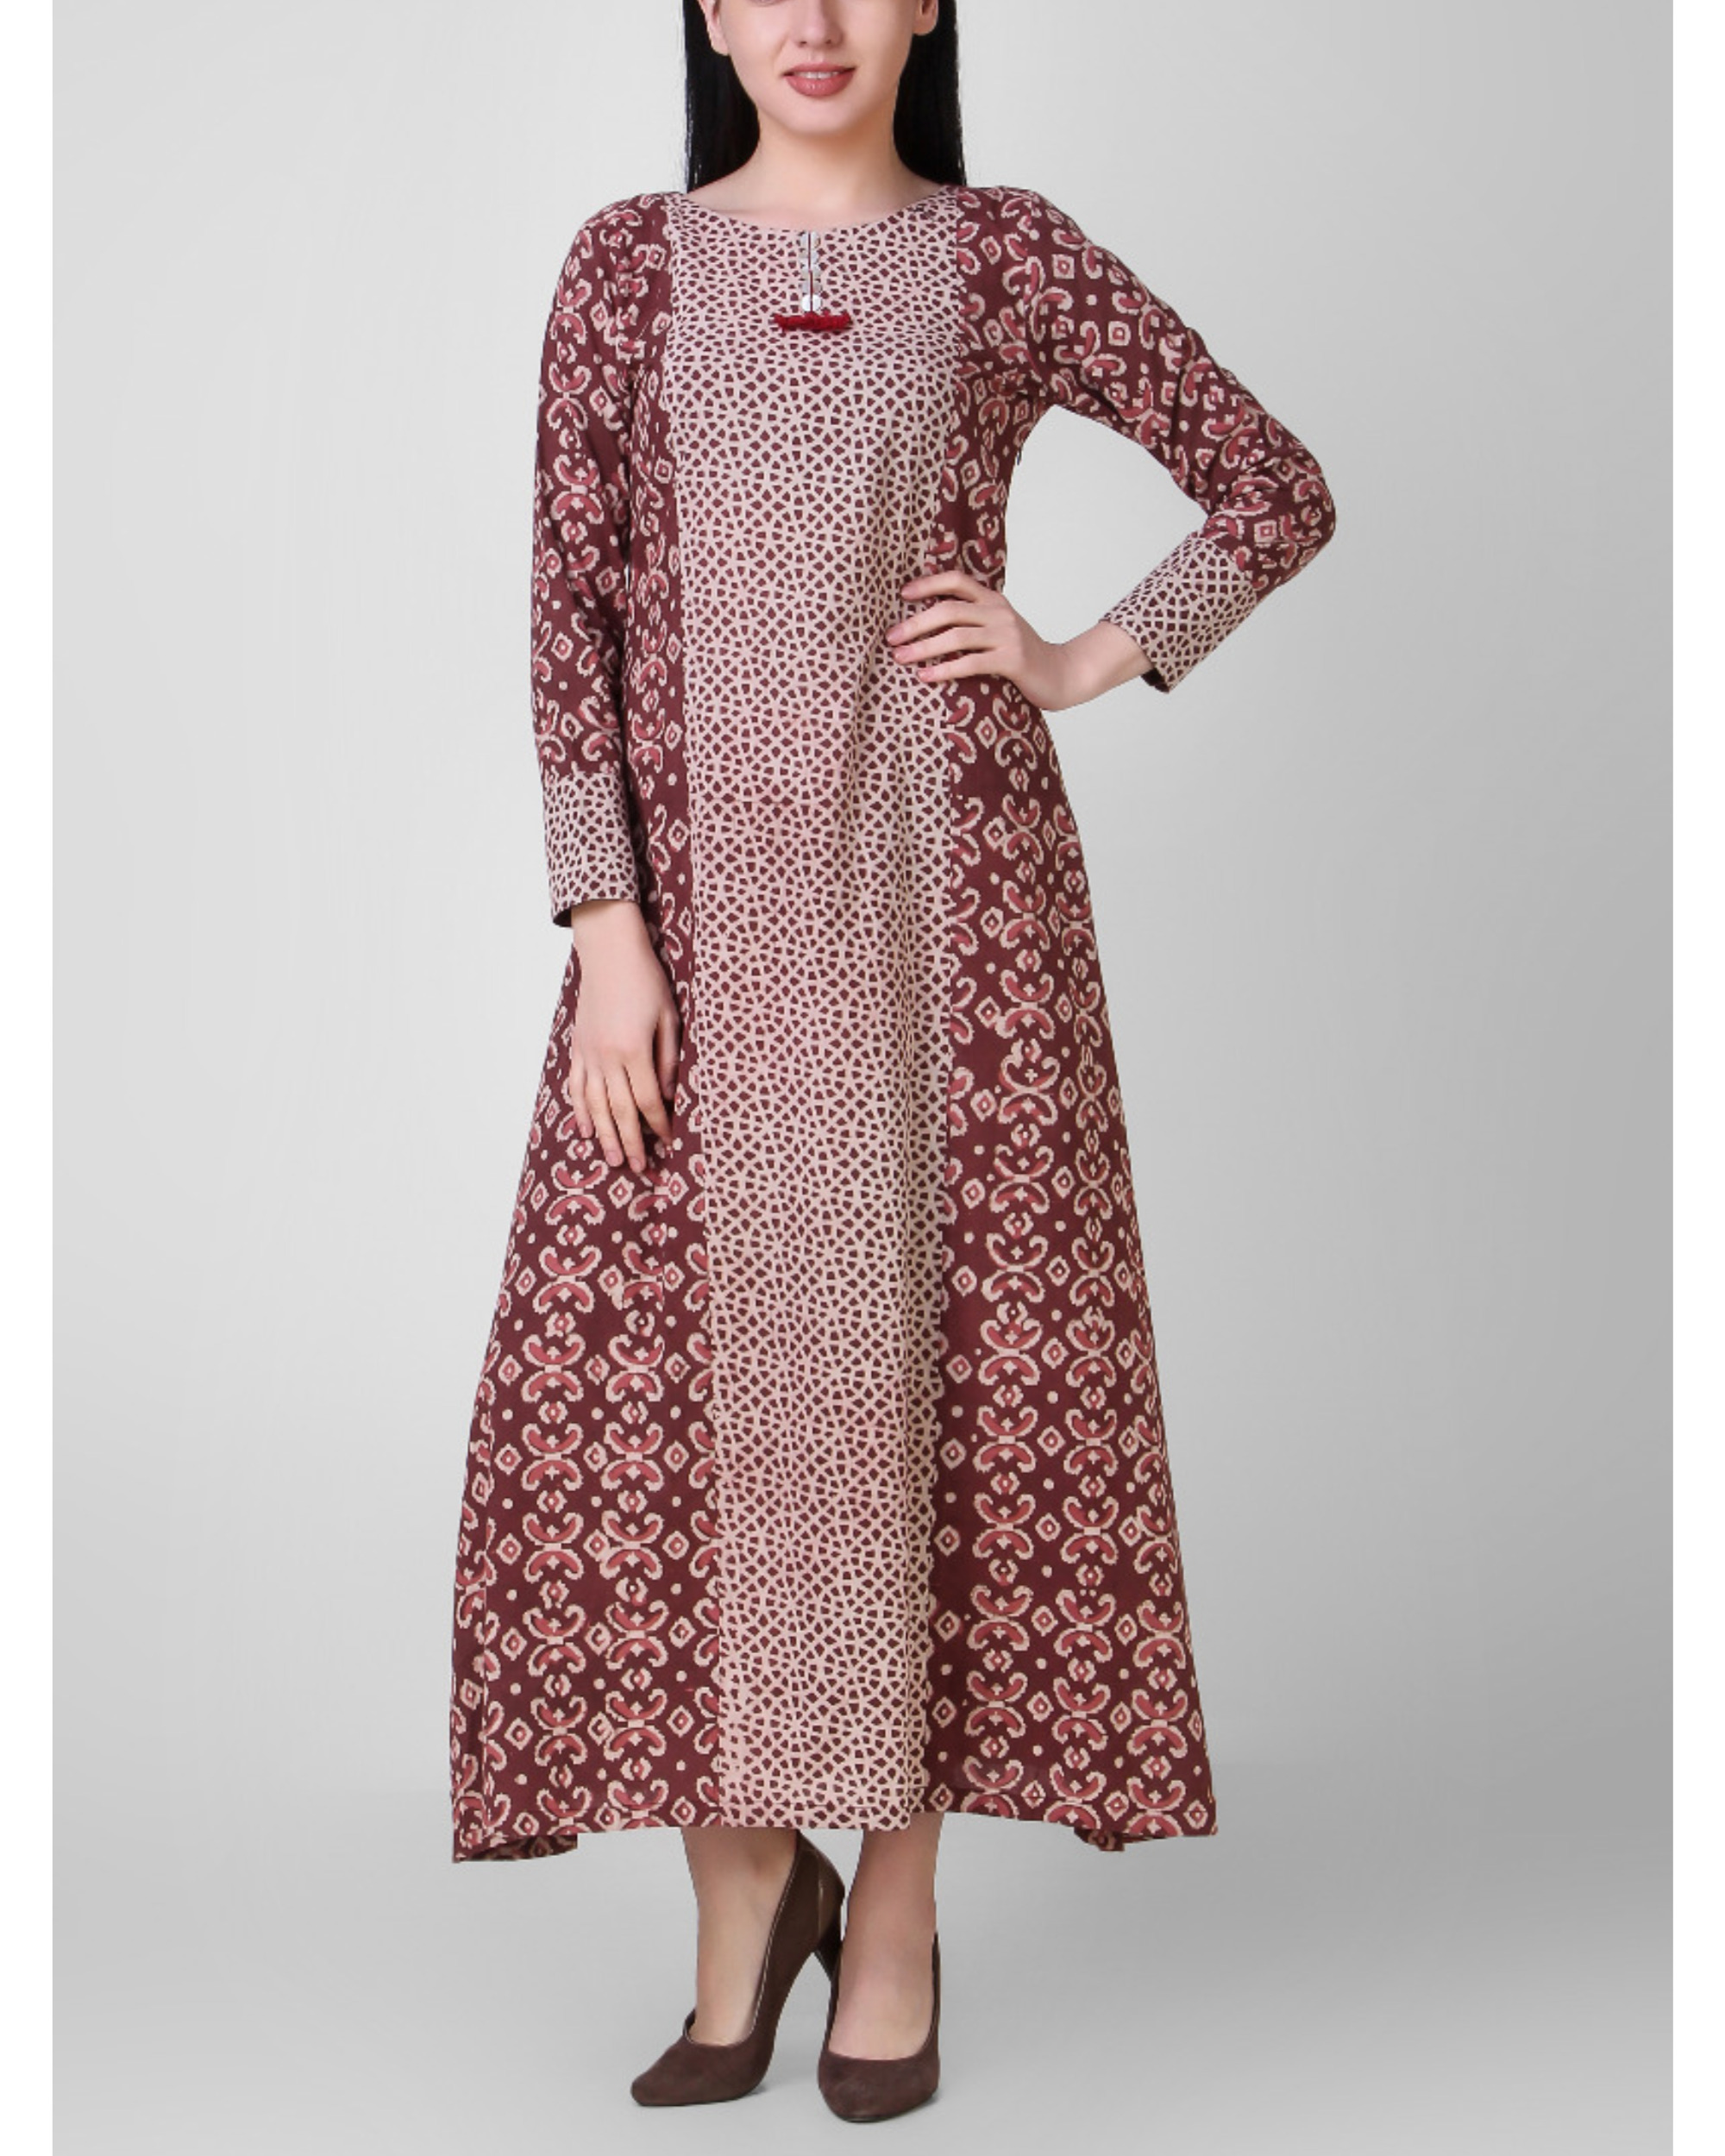 Tasseled rust dabu dress